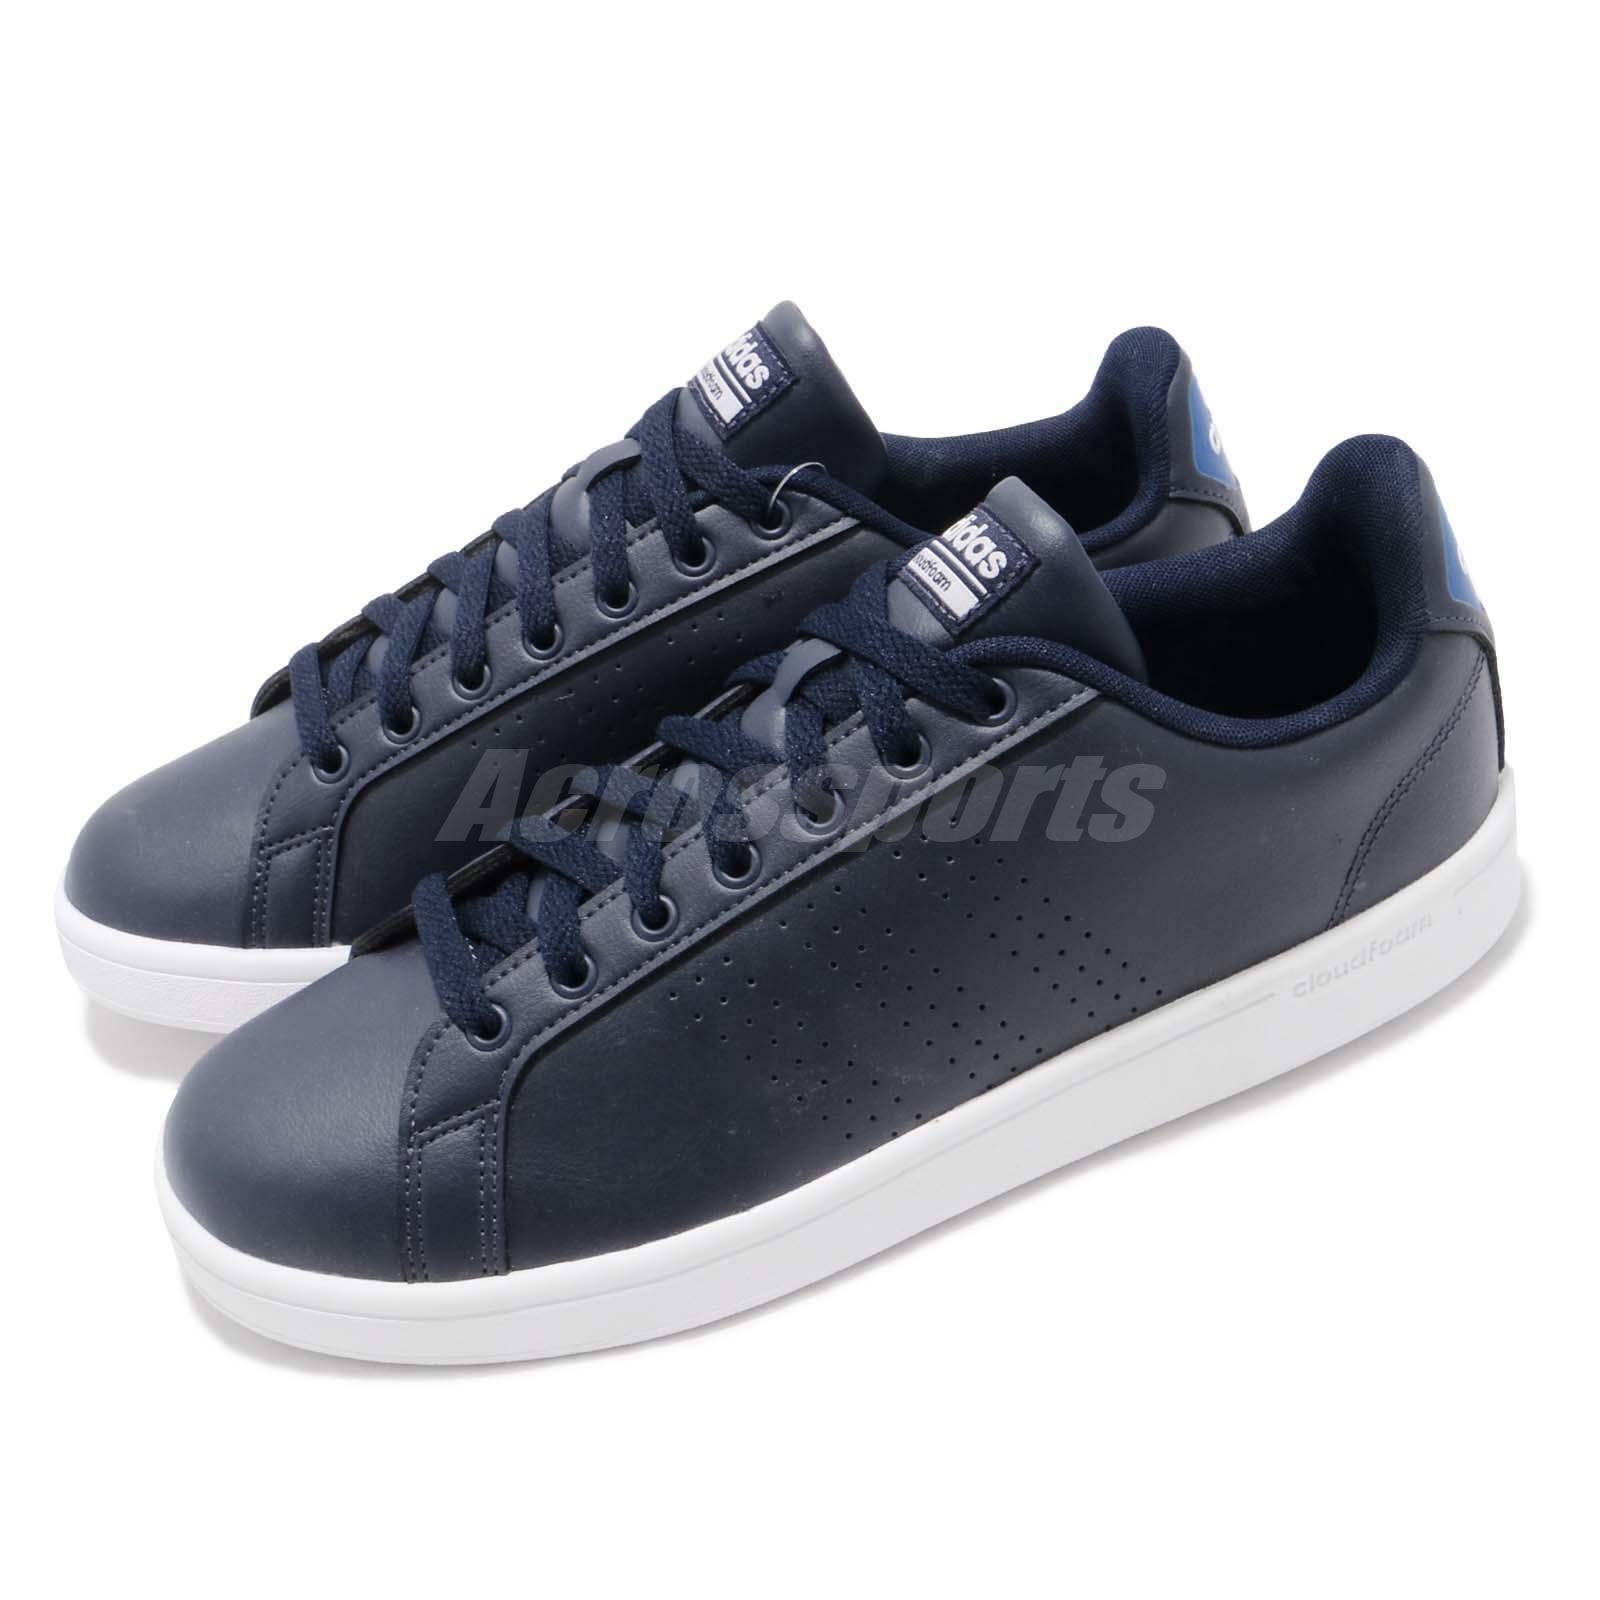 Adidas NEO CF Advantage CL Navy White Mens Casual shoes BB9625